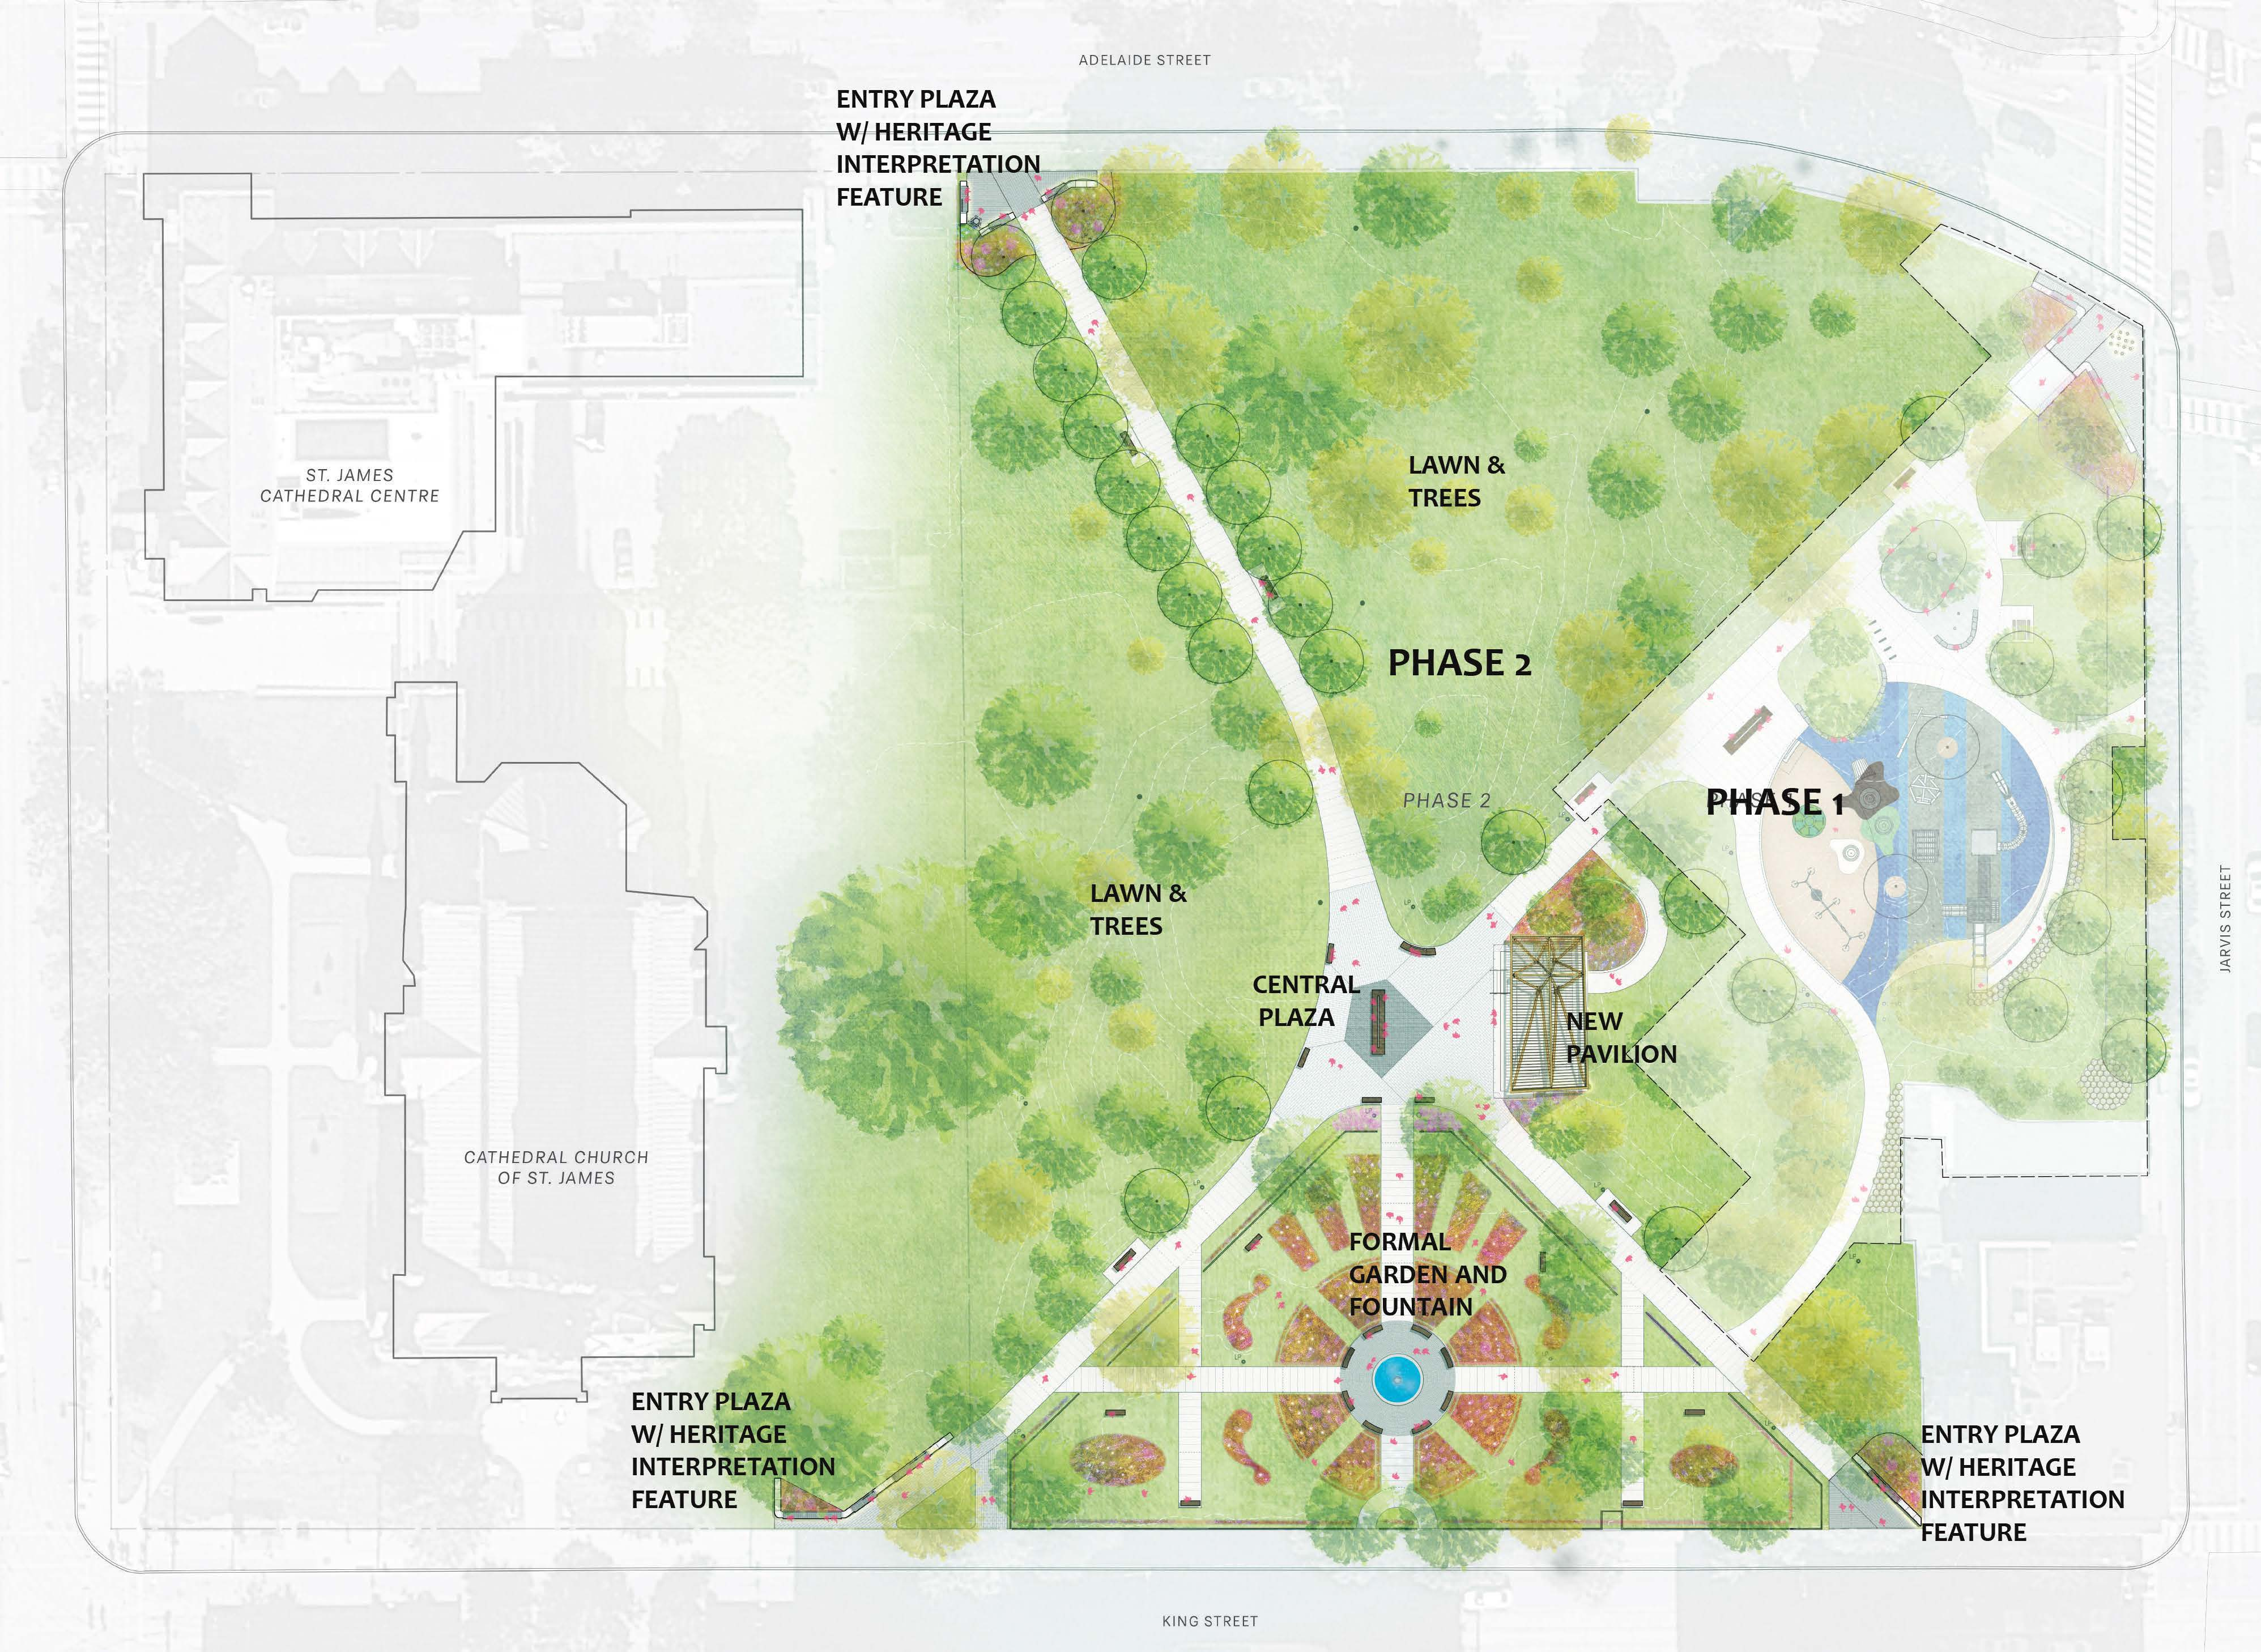 Phase two site plan showing updated entry plazas and new central plaza and pavilion of St. James Park